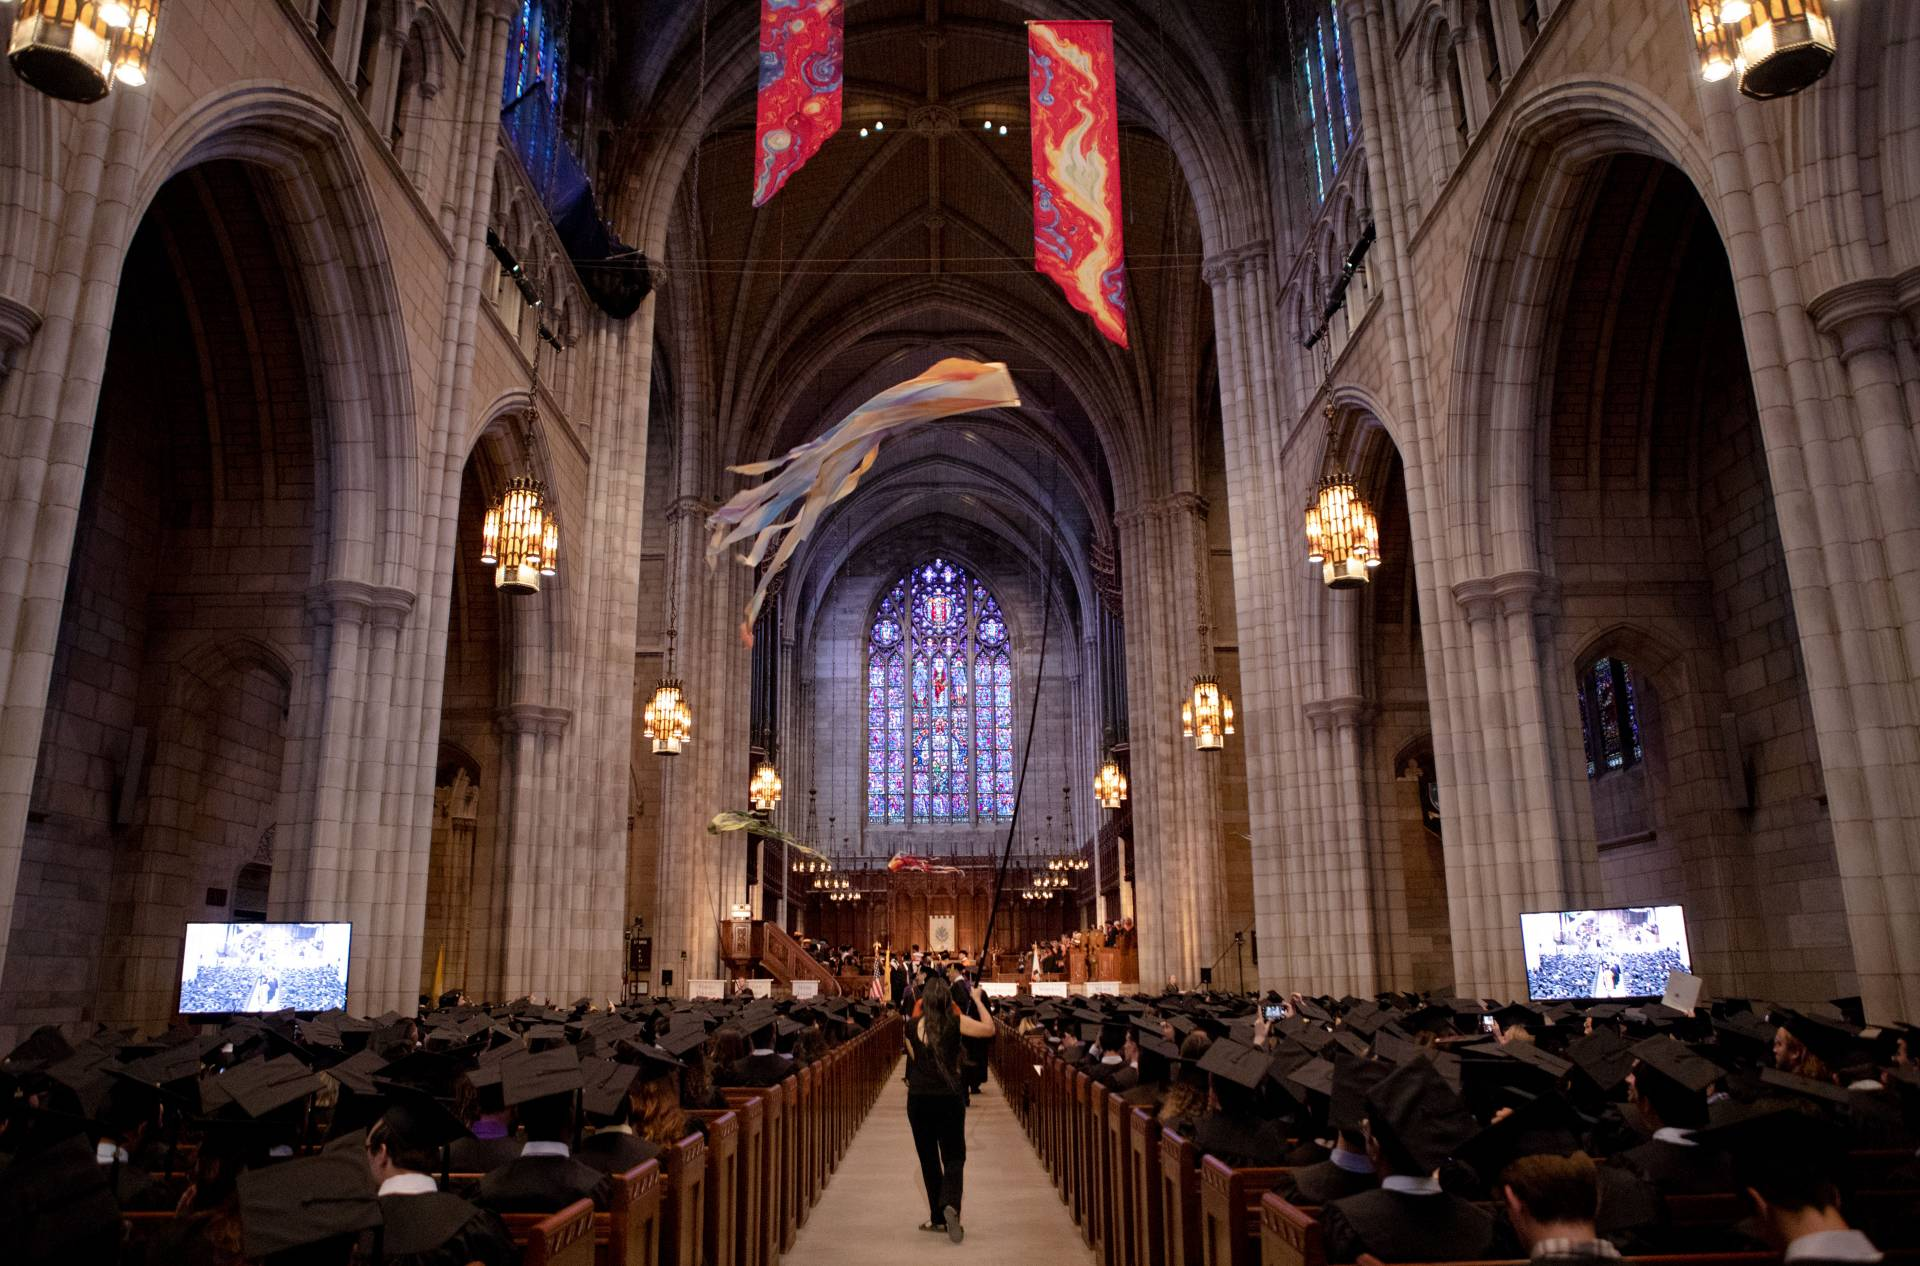 Interior of Chapel during Baccalaureate ceremony